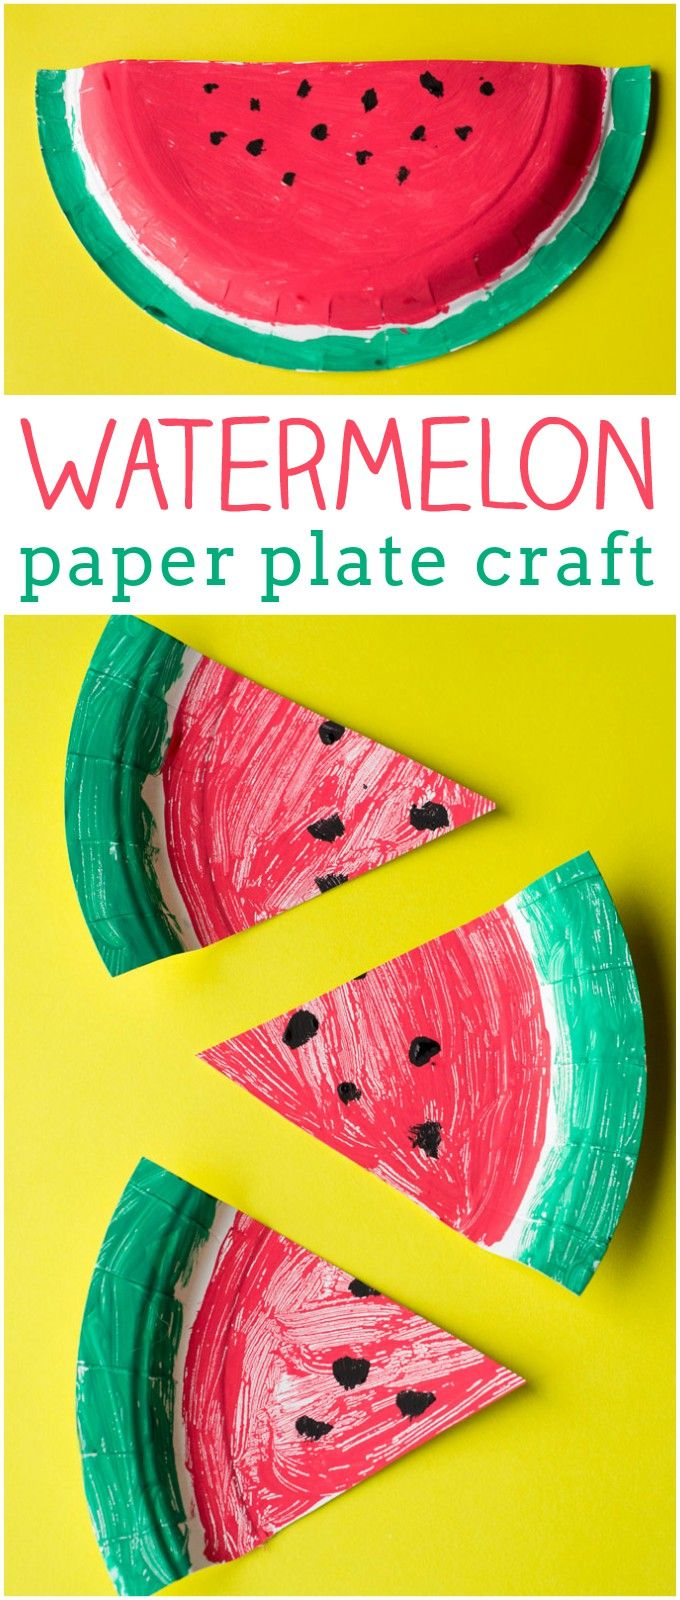 This watermelon paper plate craft is perfect for preschoolers! It makes a great summertime project & 558 best Paper Plate Crafts images on Pinterest | Paper plate crafts ...